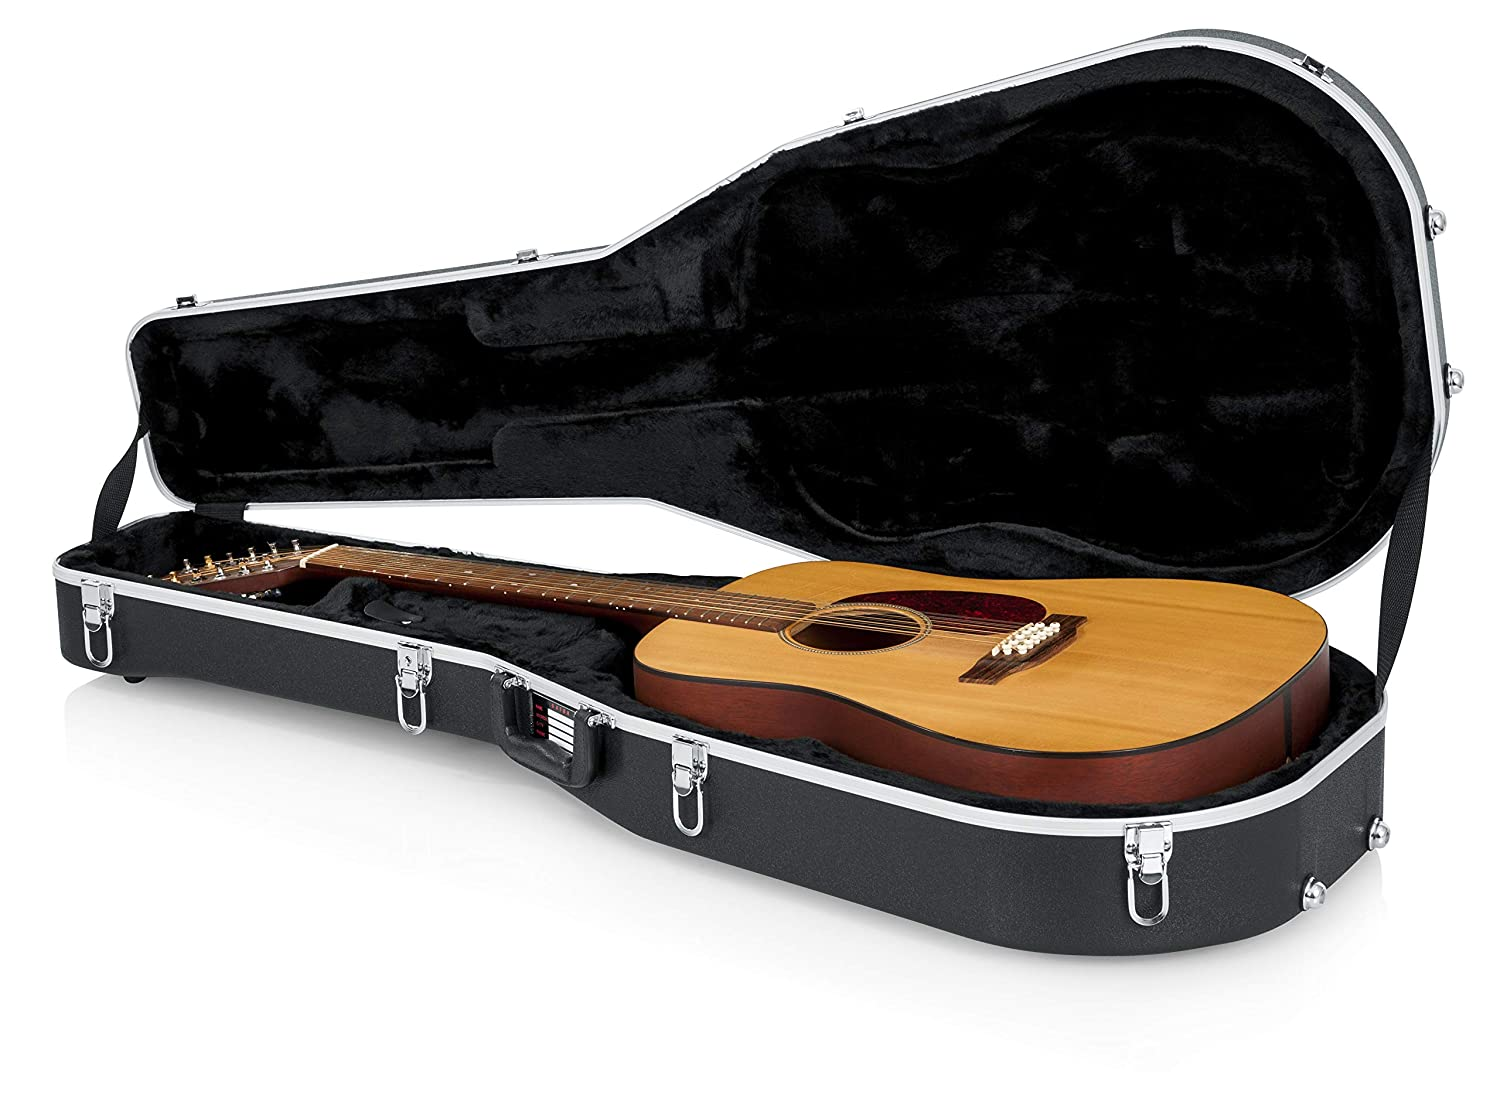 GATOR GC-DREAD-12 - Estuche para guitarra dreadnought (interior moldeado), color negro: Amazon.es: Instrumentos musicales